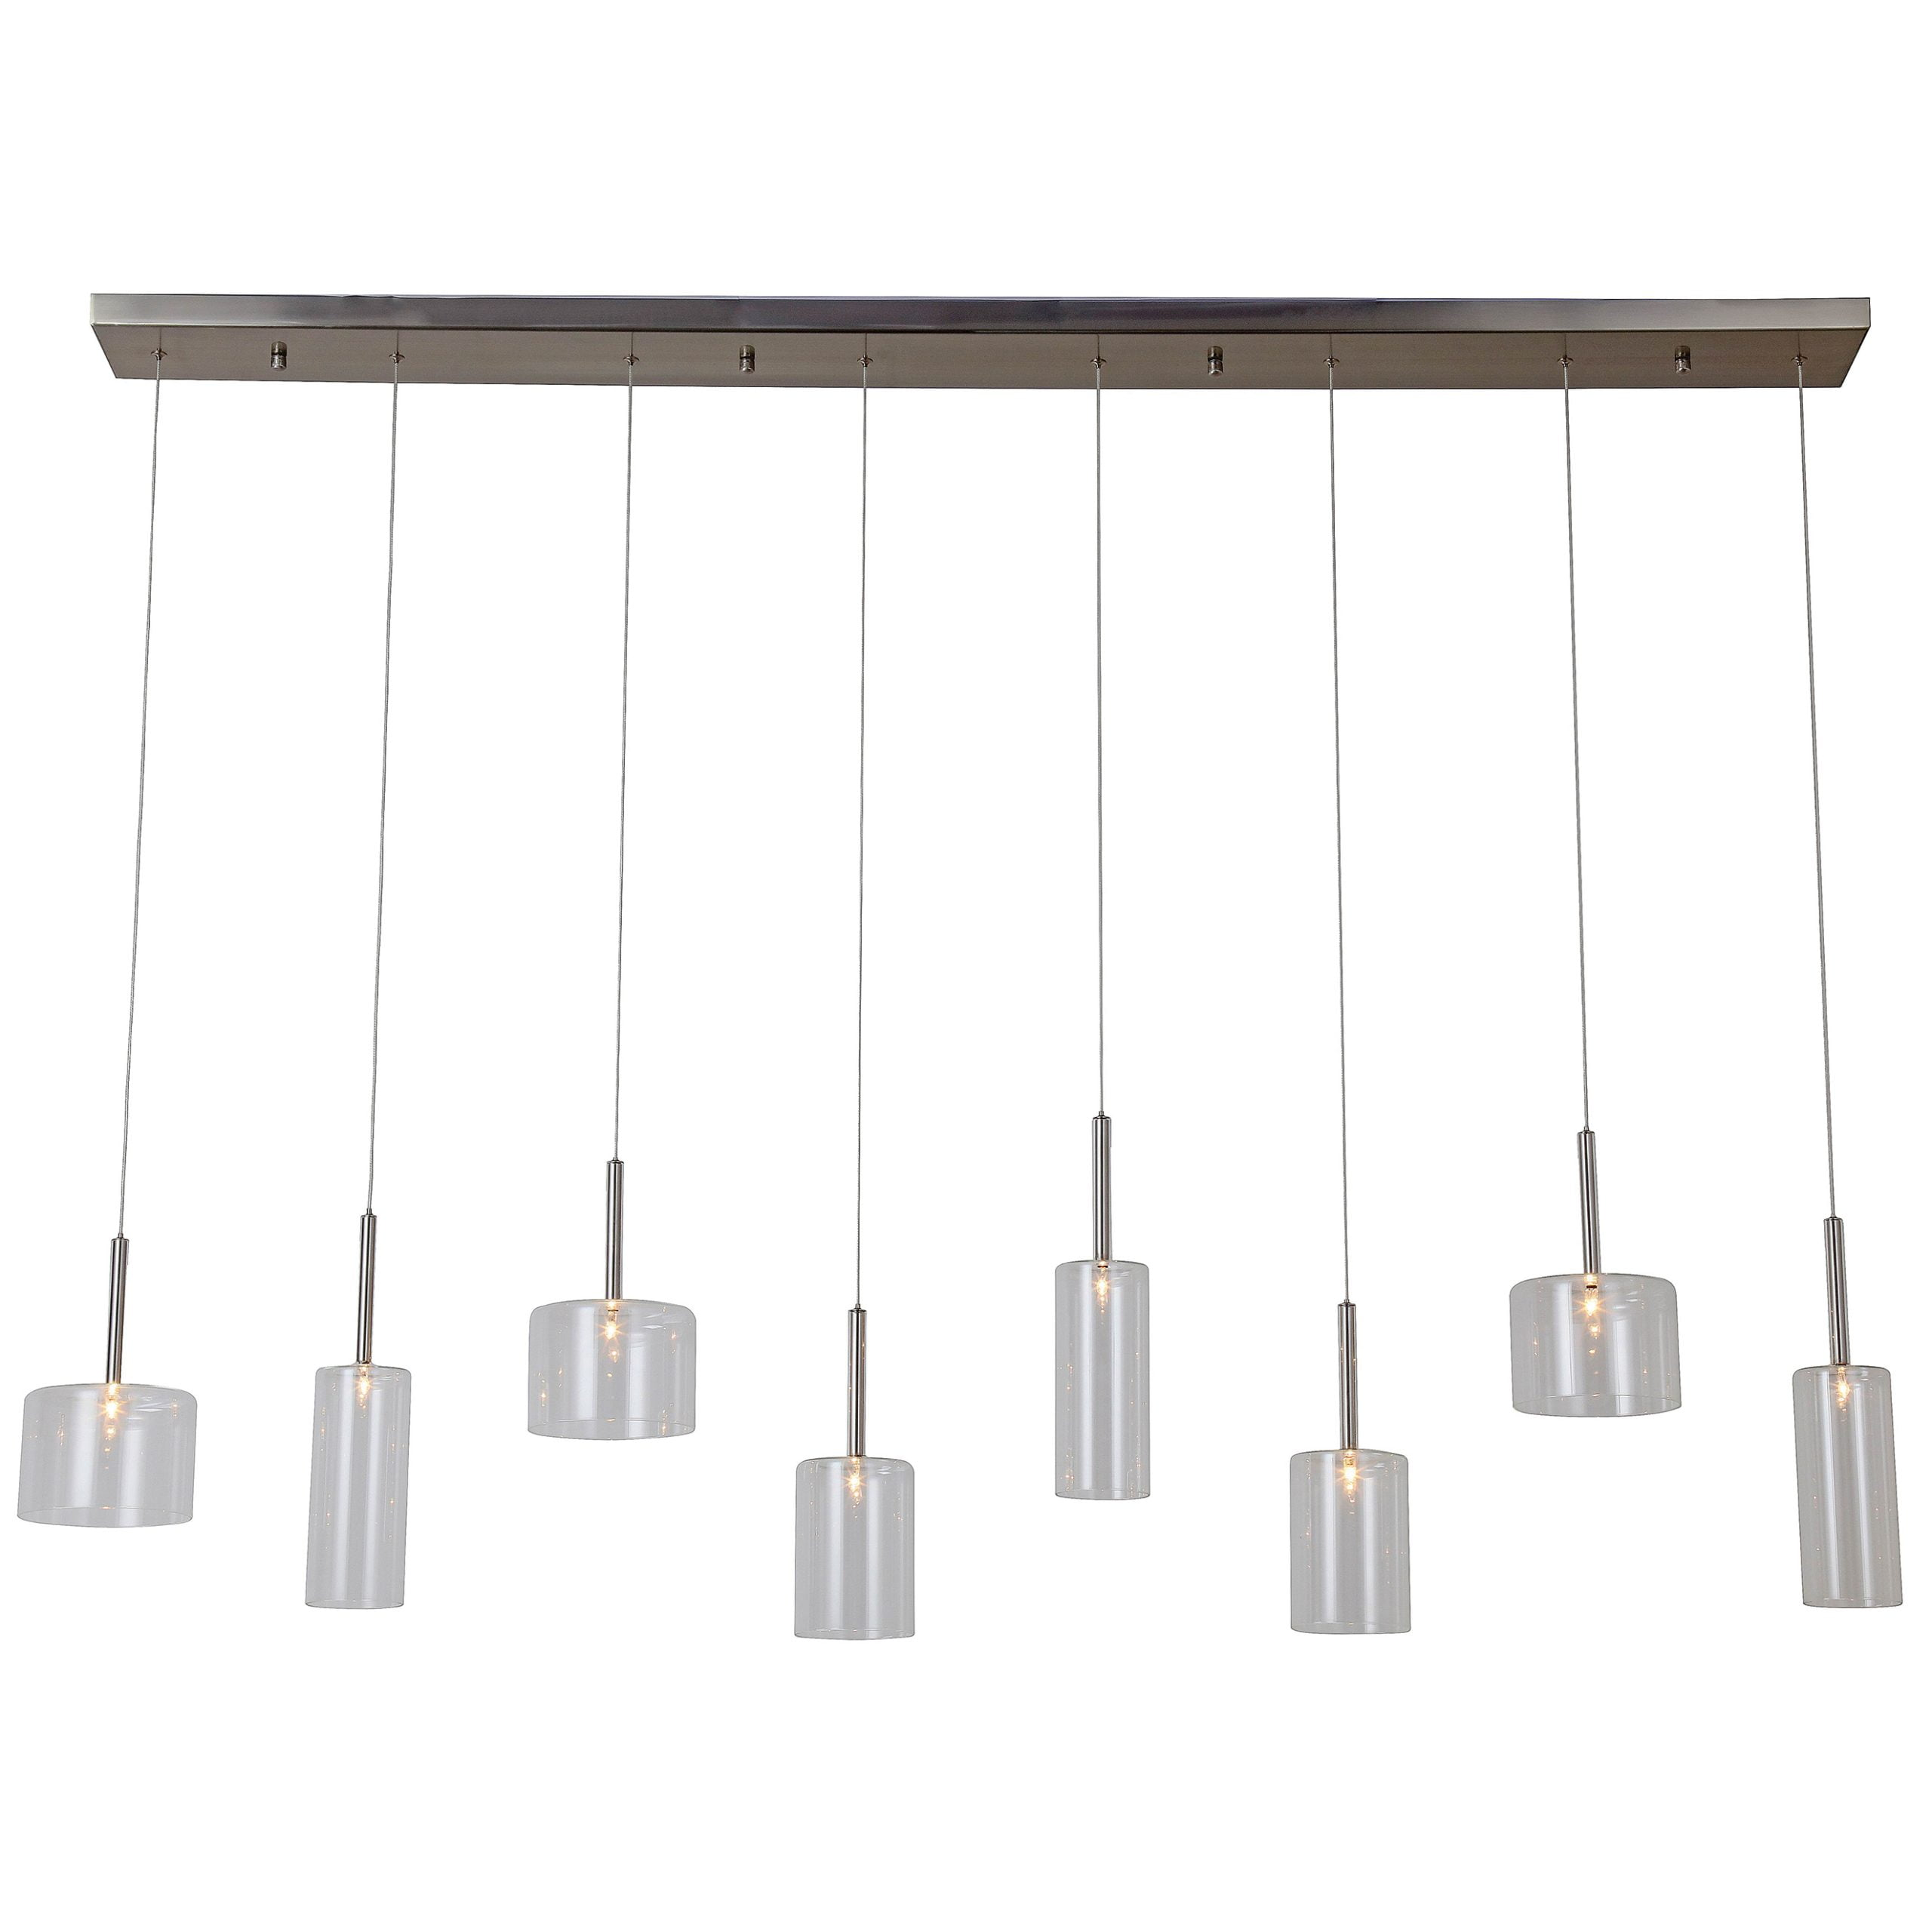 "60""W Satin Nickel Ceiling Fixture with Clear Glass Shades"